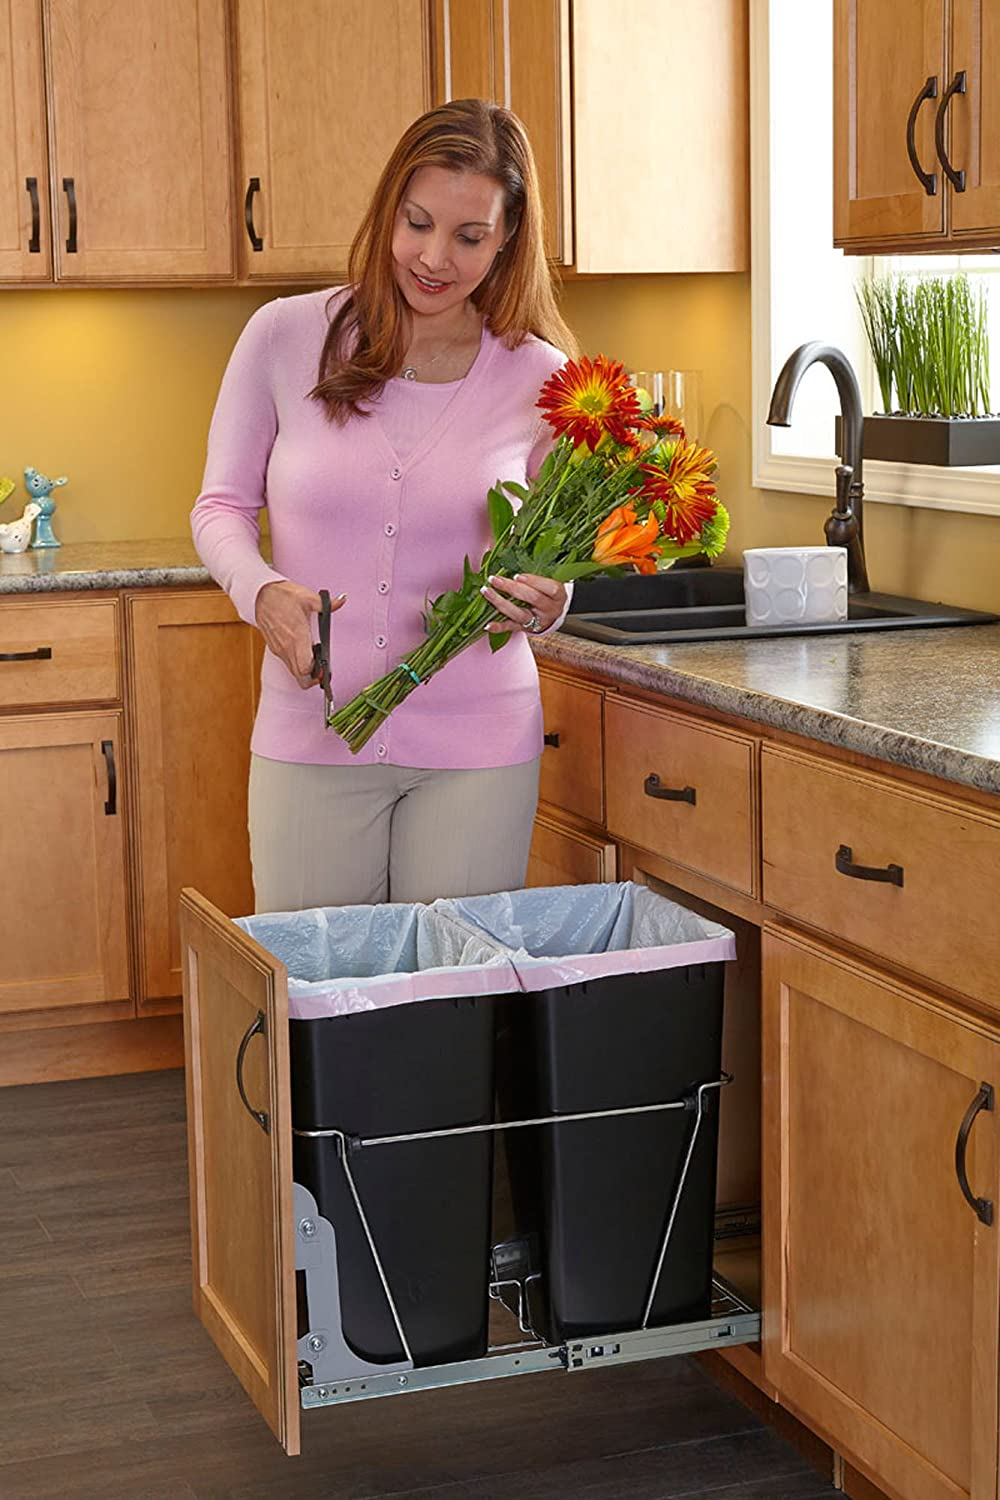 pull out trash garbage can waste container kitchen cabinet organizer 35 quart ebay. Black Bedroom Furniture Sets. Home Design Ideas